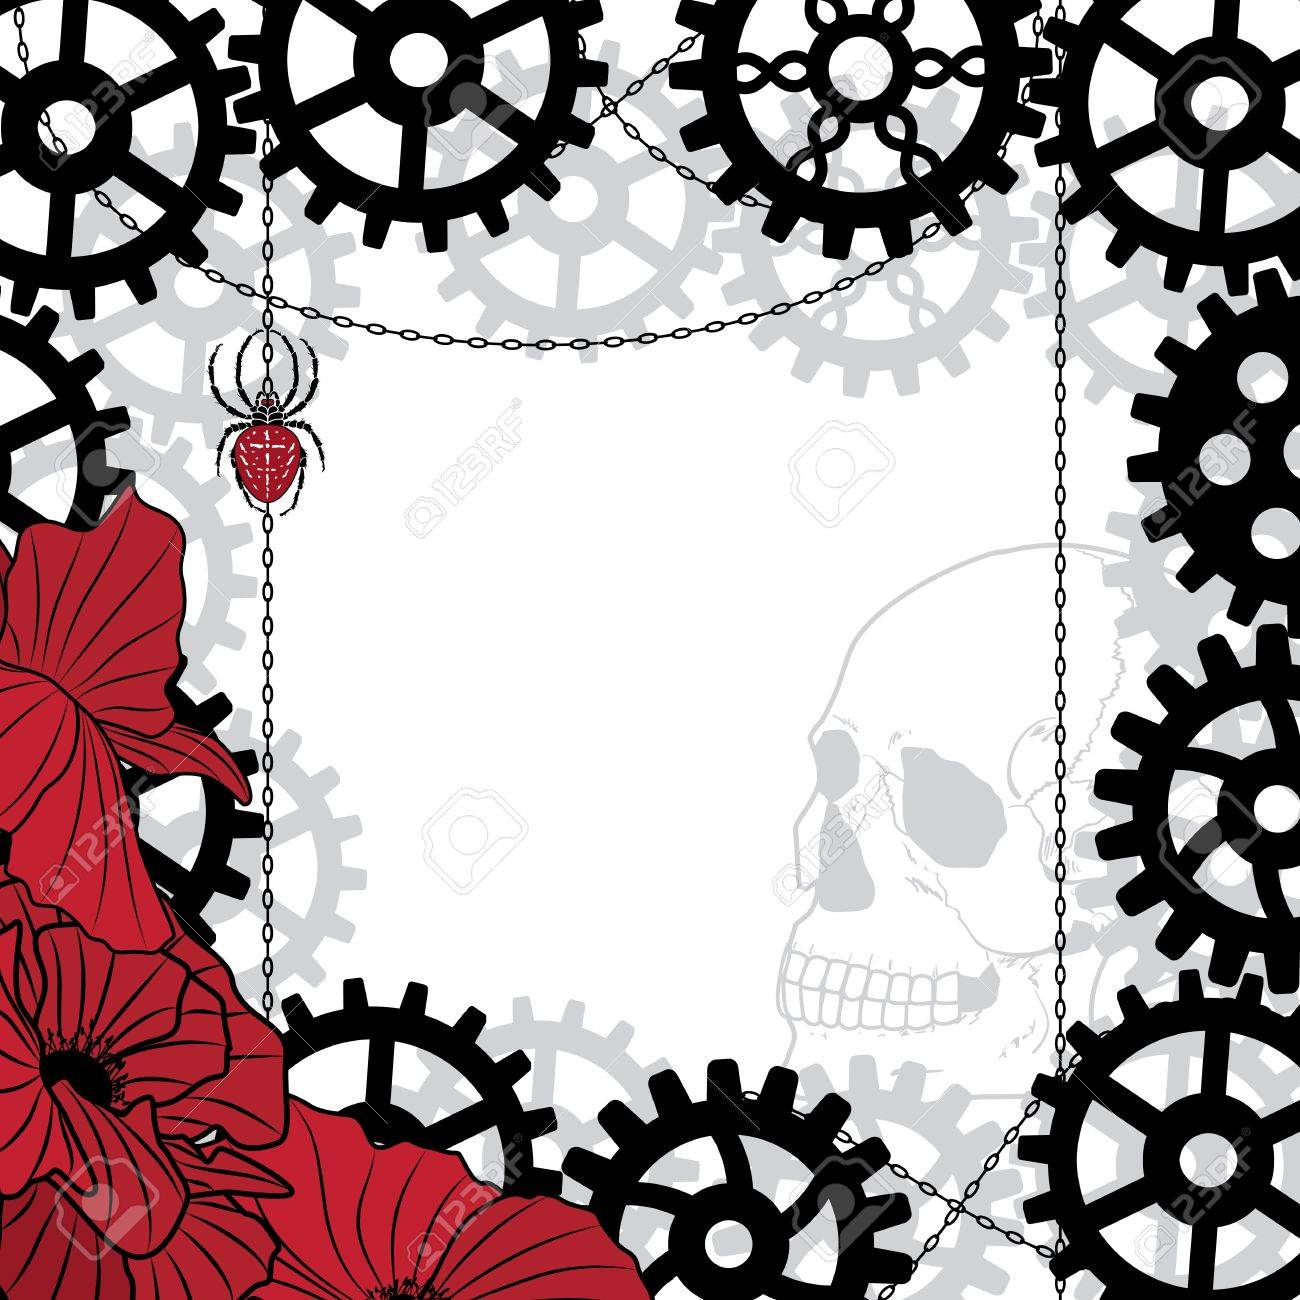 vector frame with skull, gears, spider and chains in black, red and white colors Stock Vector - 20227521